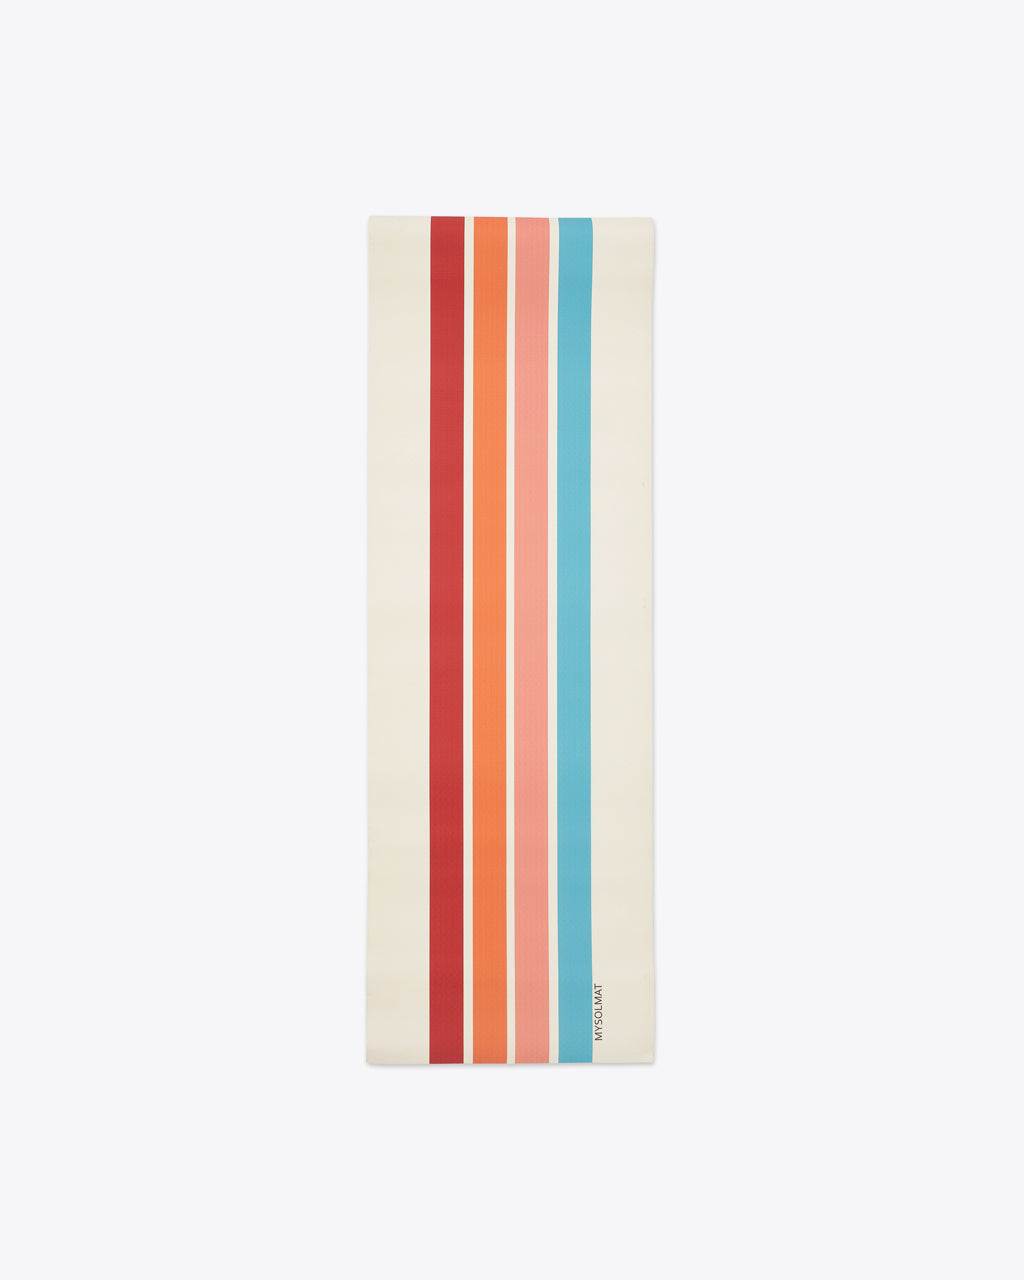 white yoga mat with 4 different colored stripes down the center